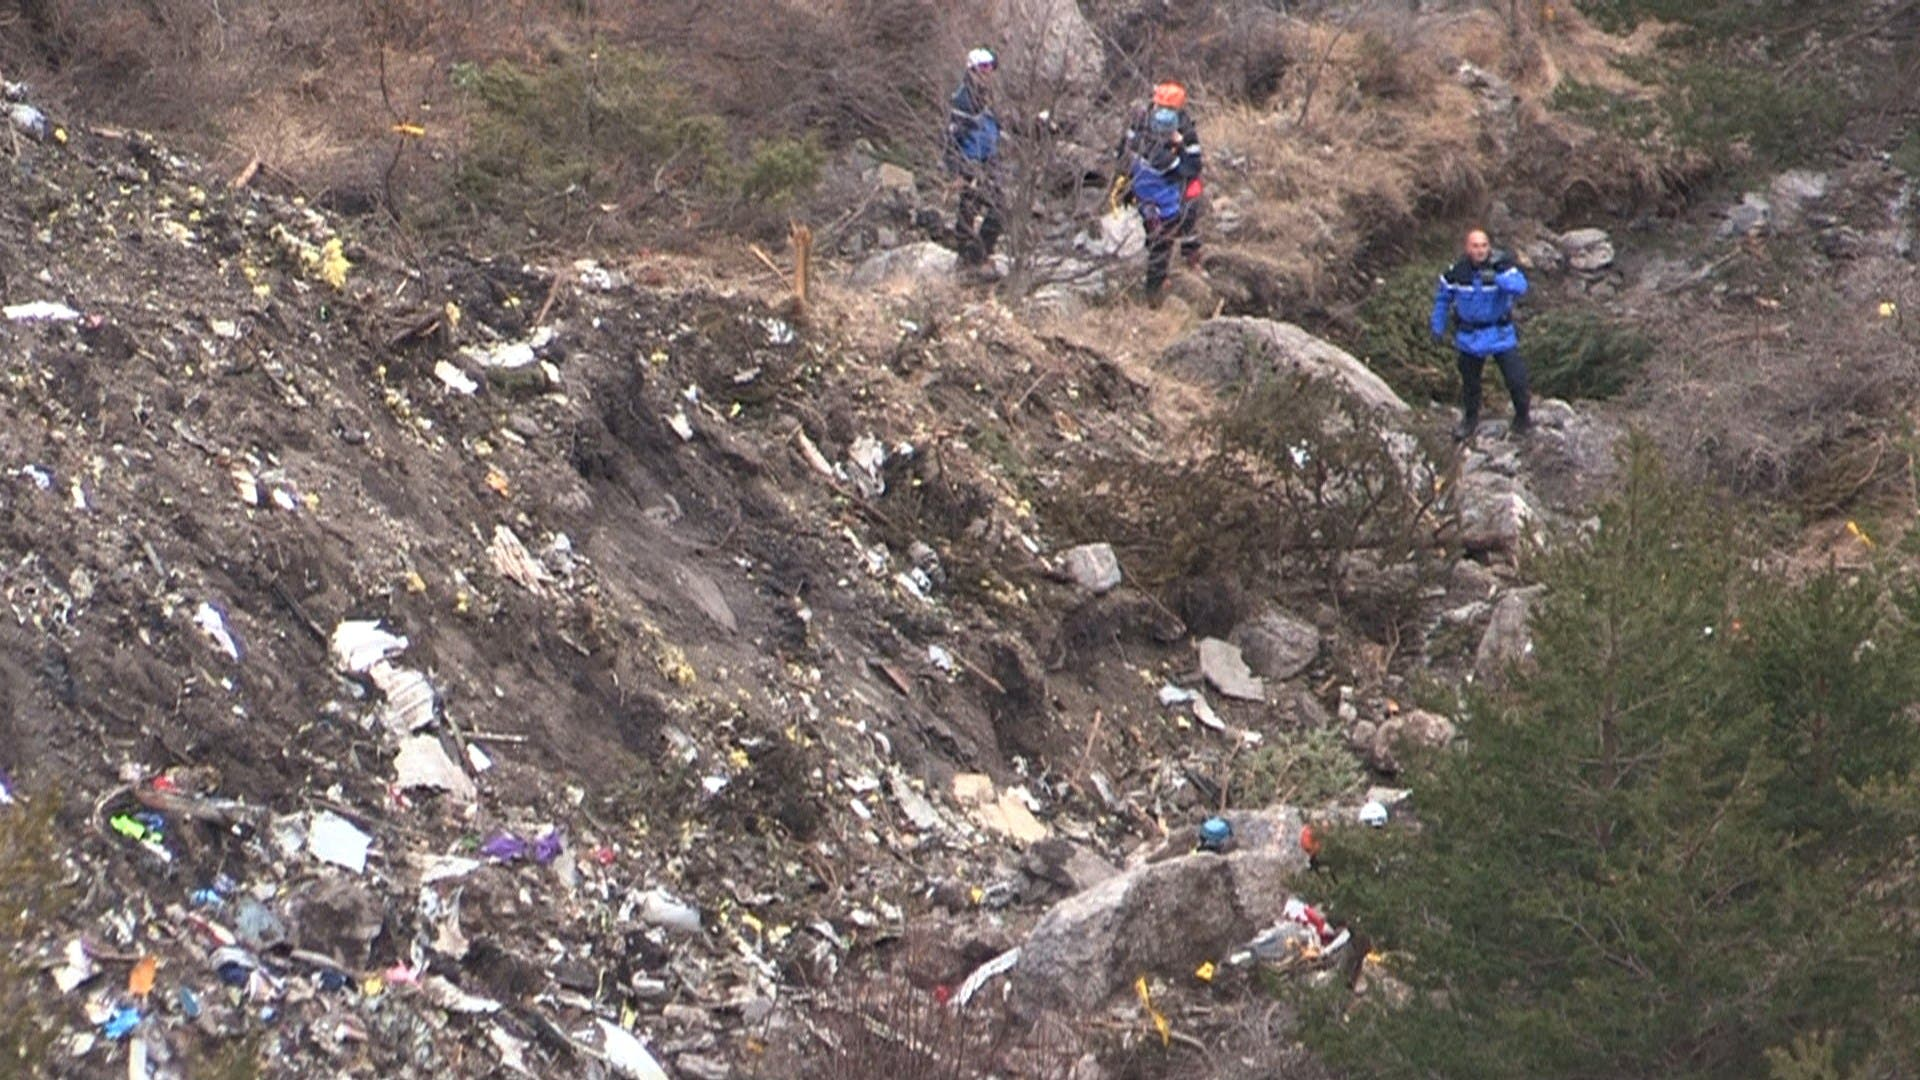 A screengrab taken from an AFP TV video on March 24, 2015 shows search and rescue personnel near scattered debris. (AFP)